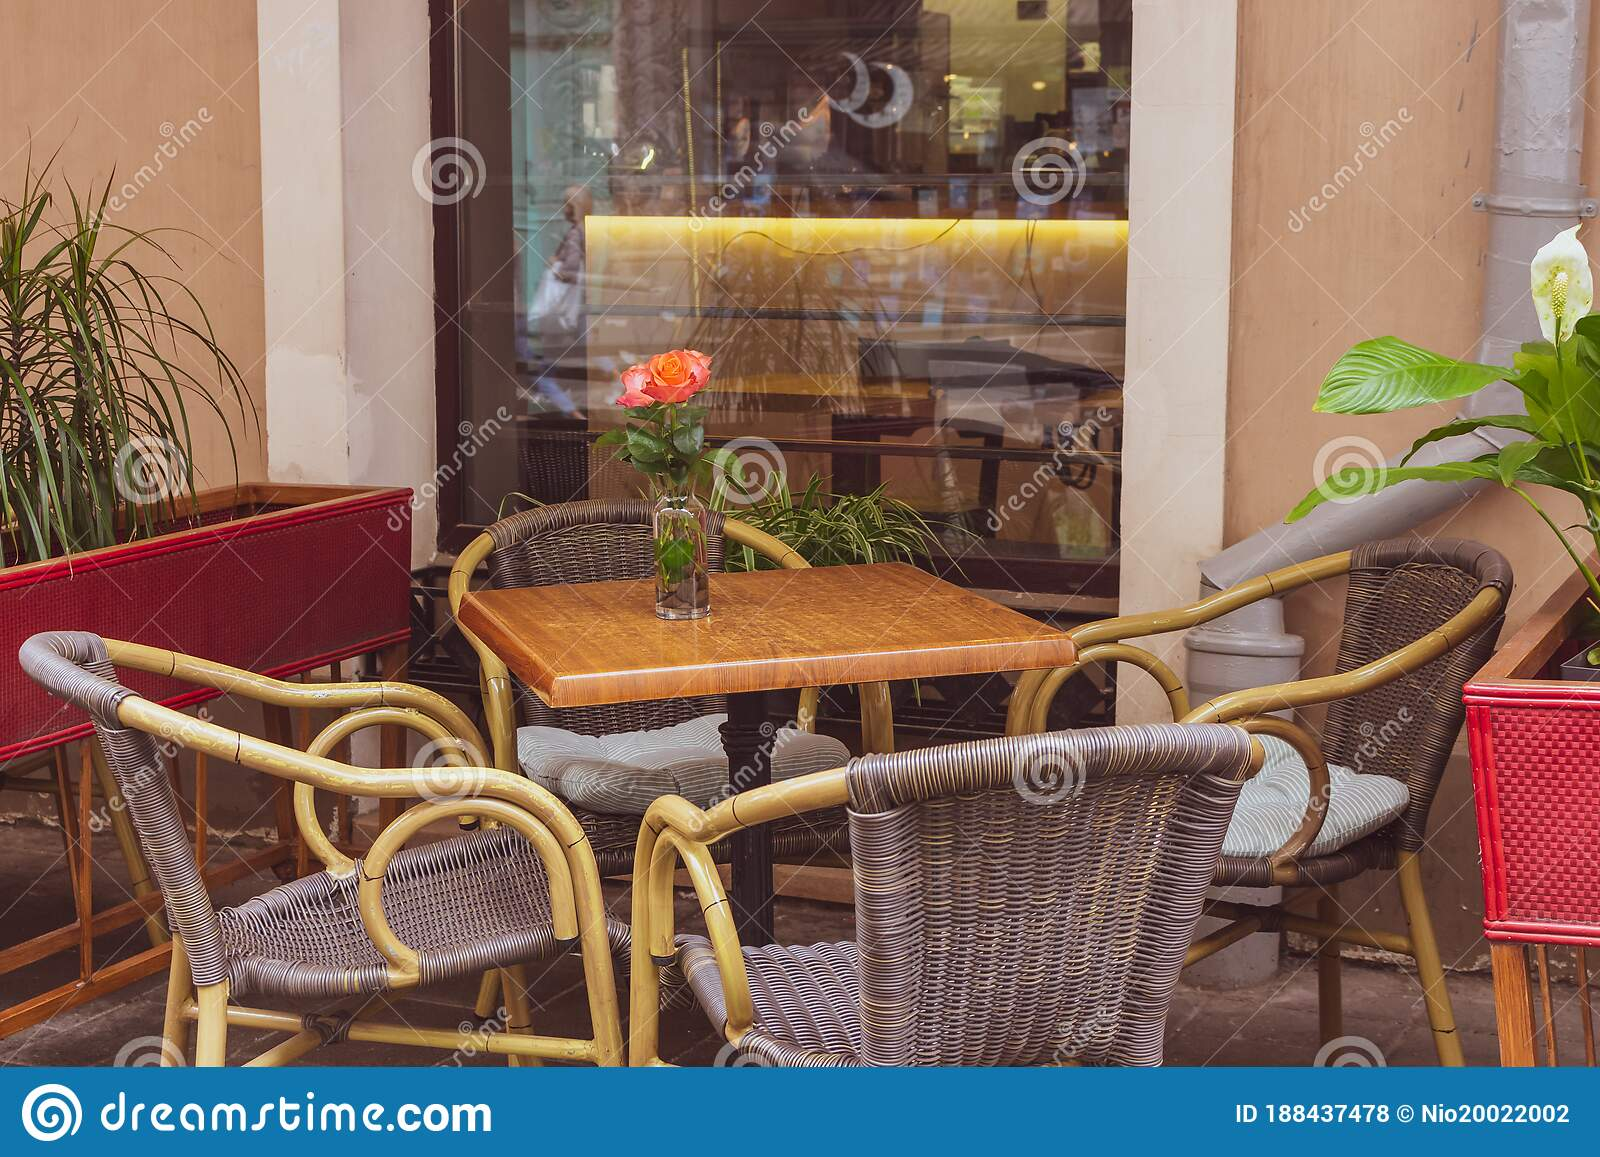 Empty Outdoor Cafe During Quarantine Restaurant Terrace With Tables And Chairs Flower On Table Of Street Cafe Stock Photo Image Of Architecture Empty 188437478